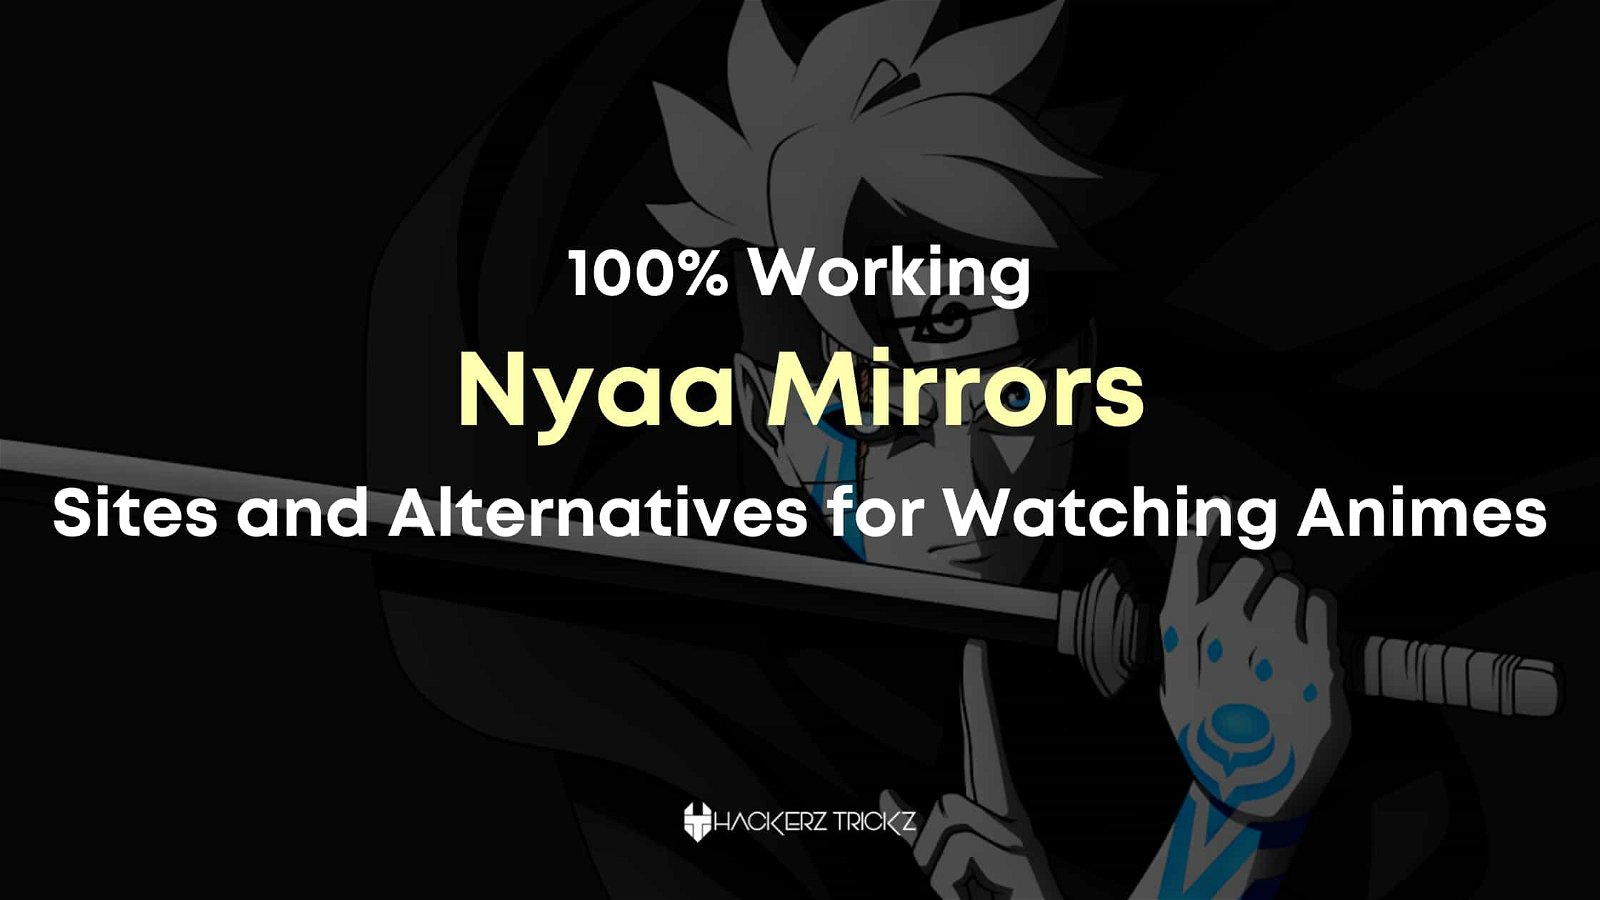 100% Working Nyaa Mirrors Sites and Alternatives for Watching Animes